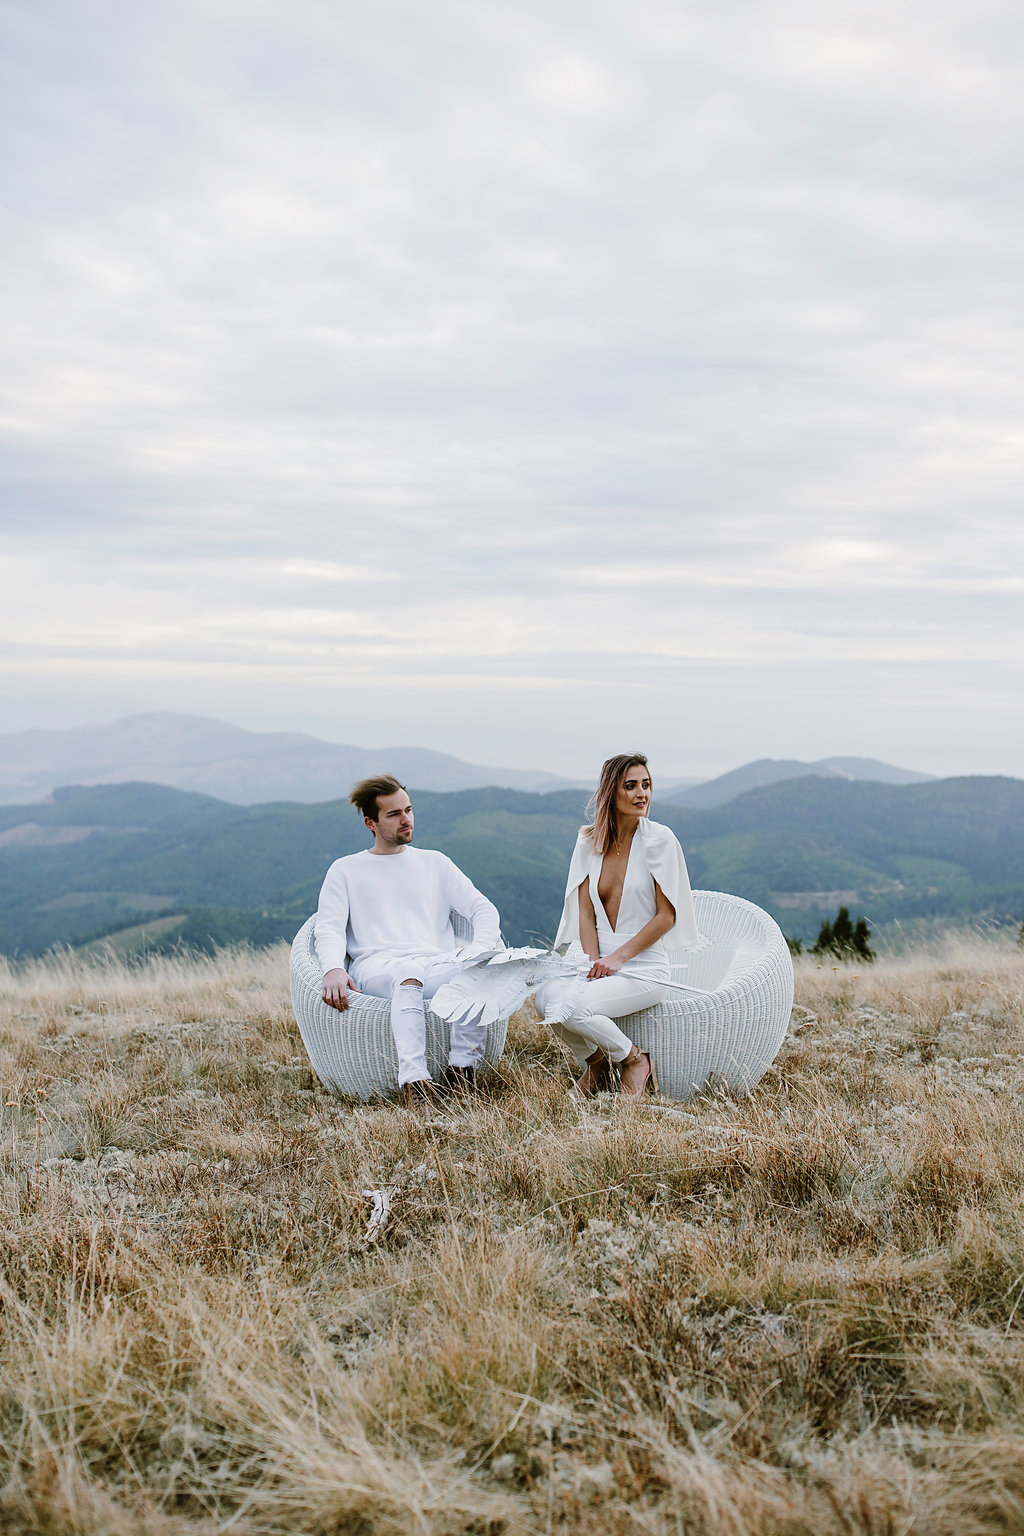 spokane-washington-amy-stone-photography-mount-spokane-adventureous-modern-elopement-photos-63